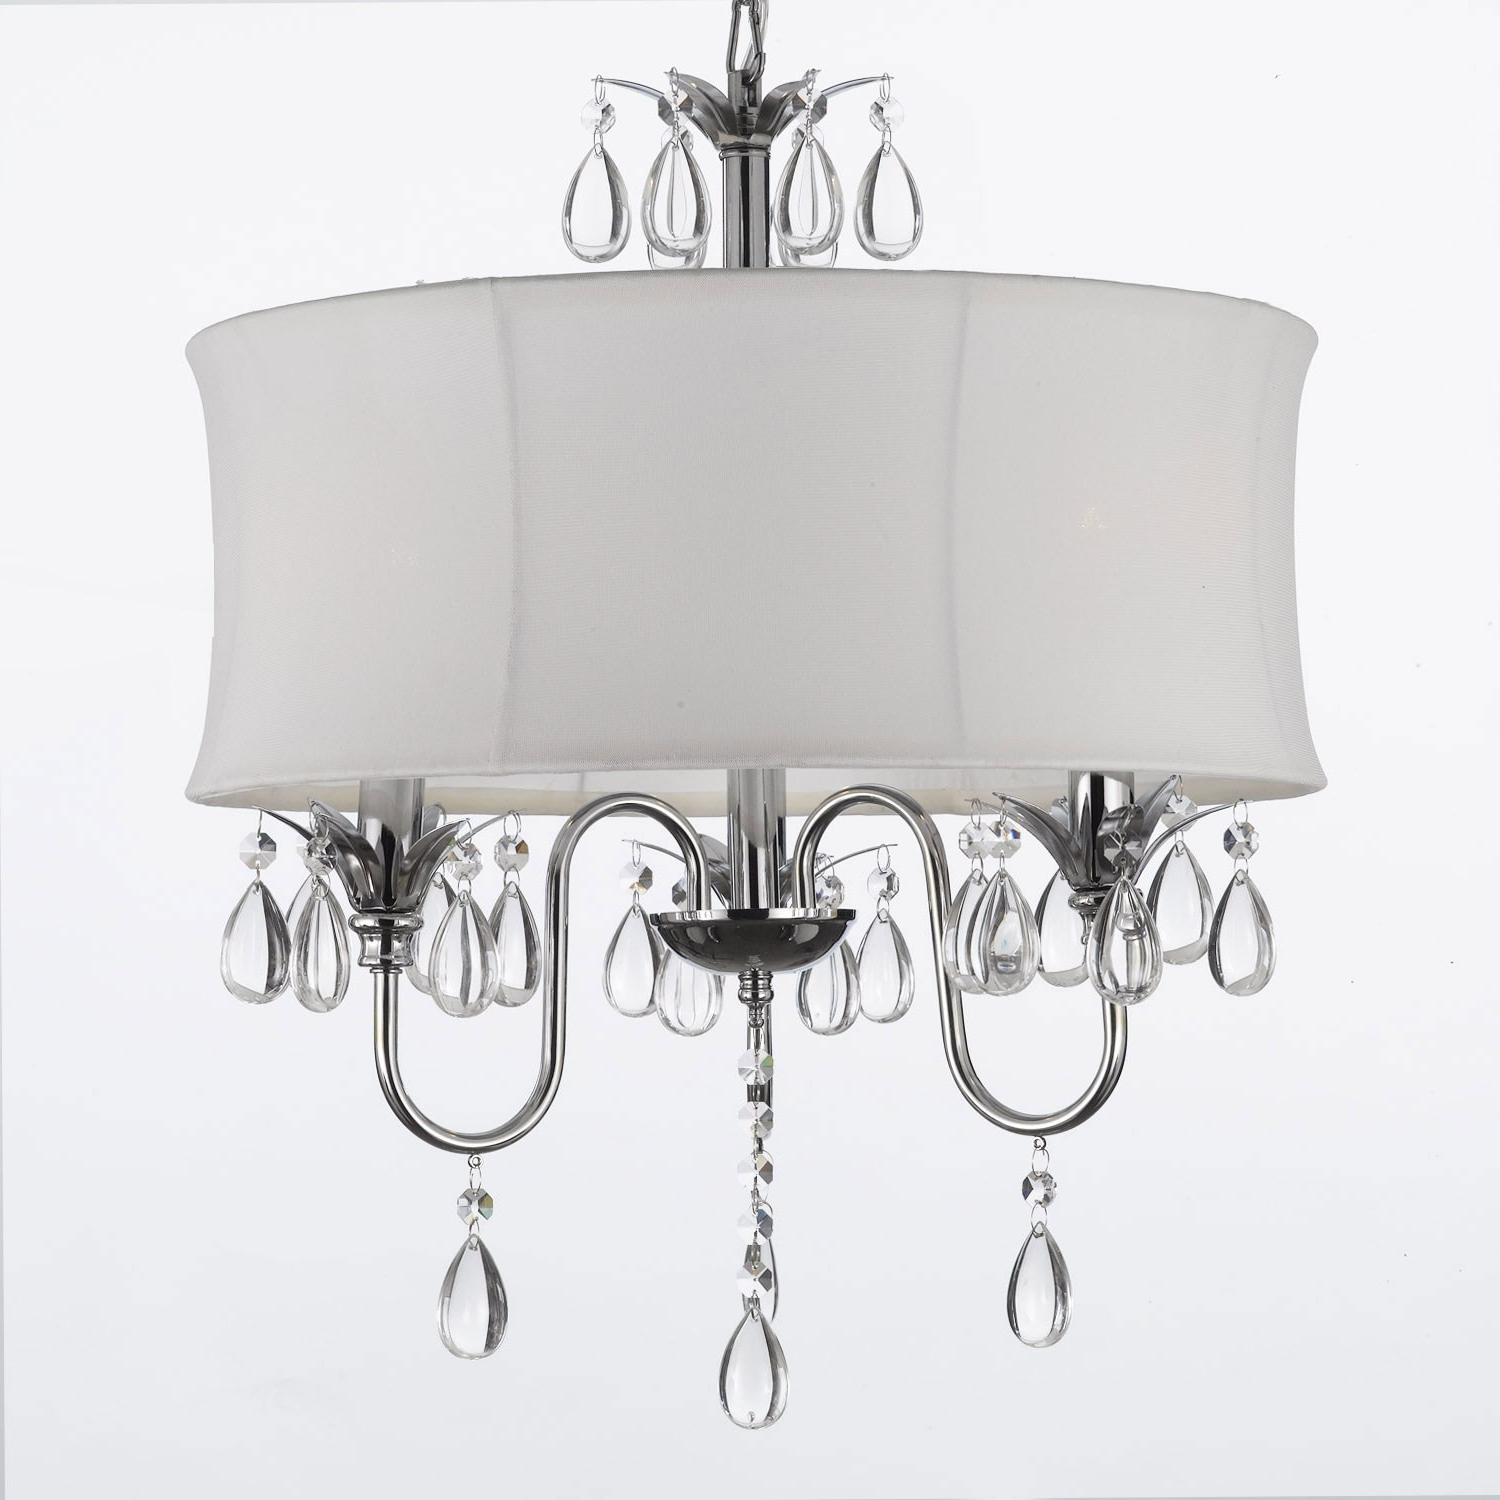 Well Known Chandeliers With Black Shades – Chandelier Showroom With Chandeliers With Black Shades (View 13 of 15)